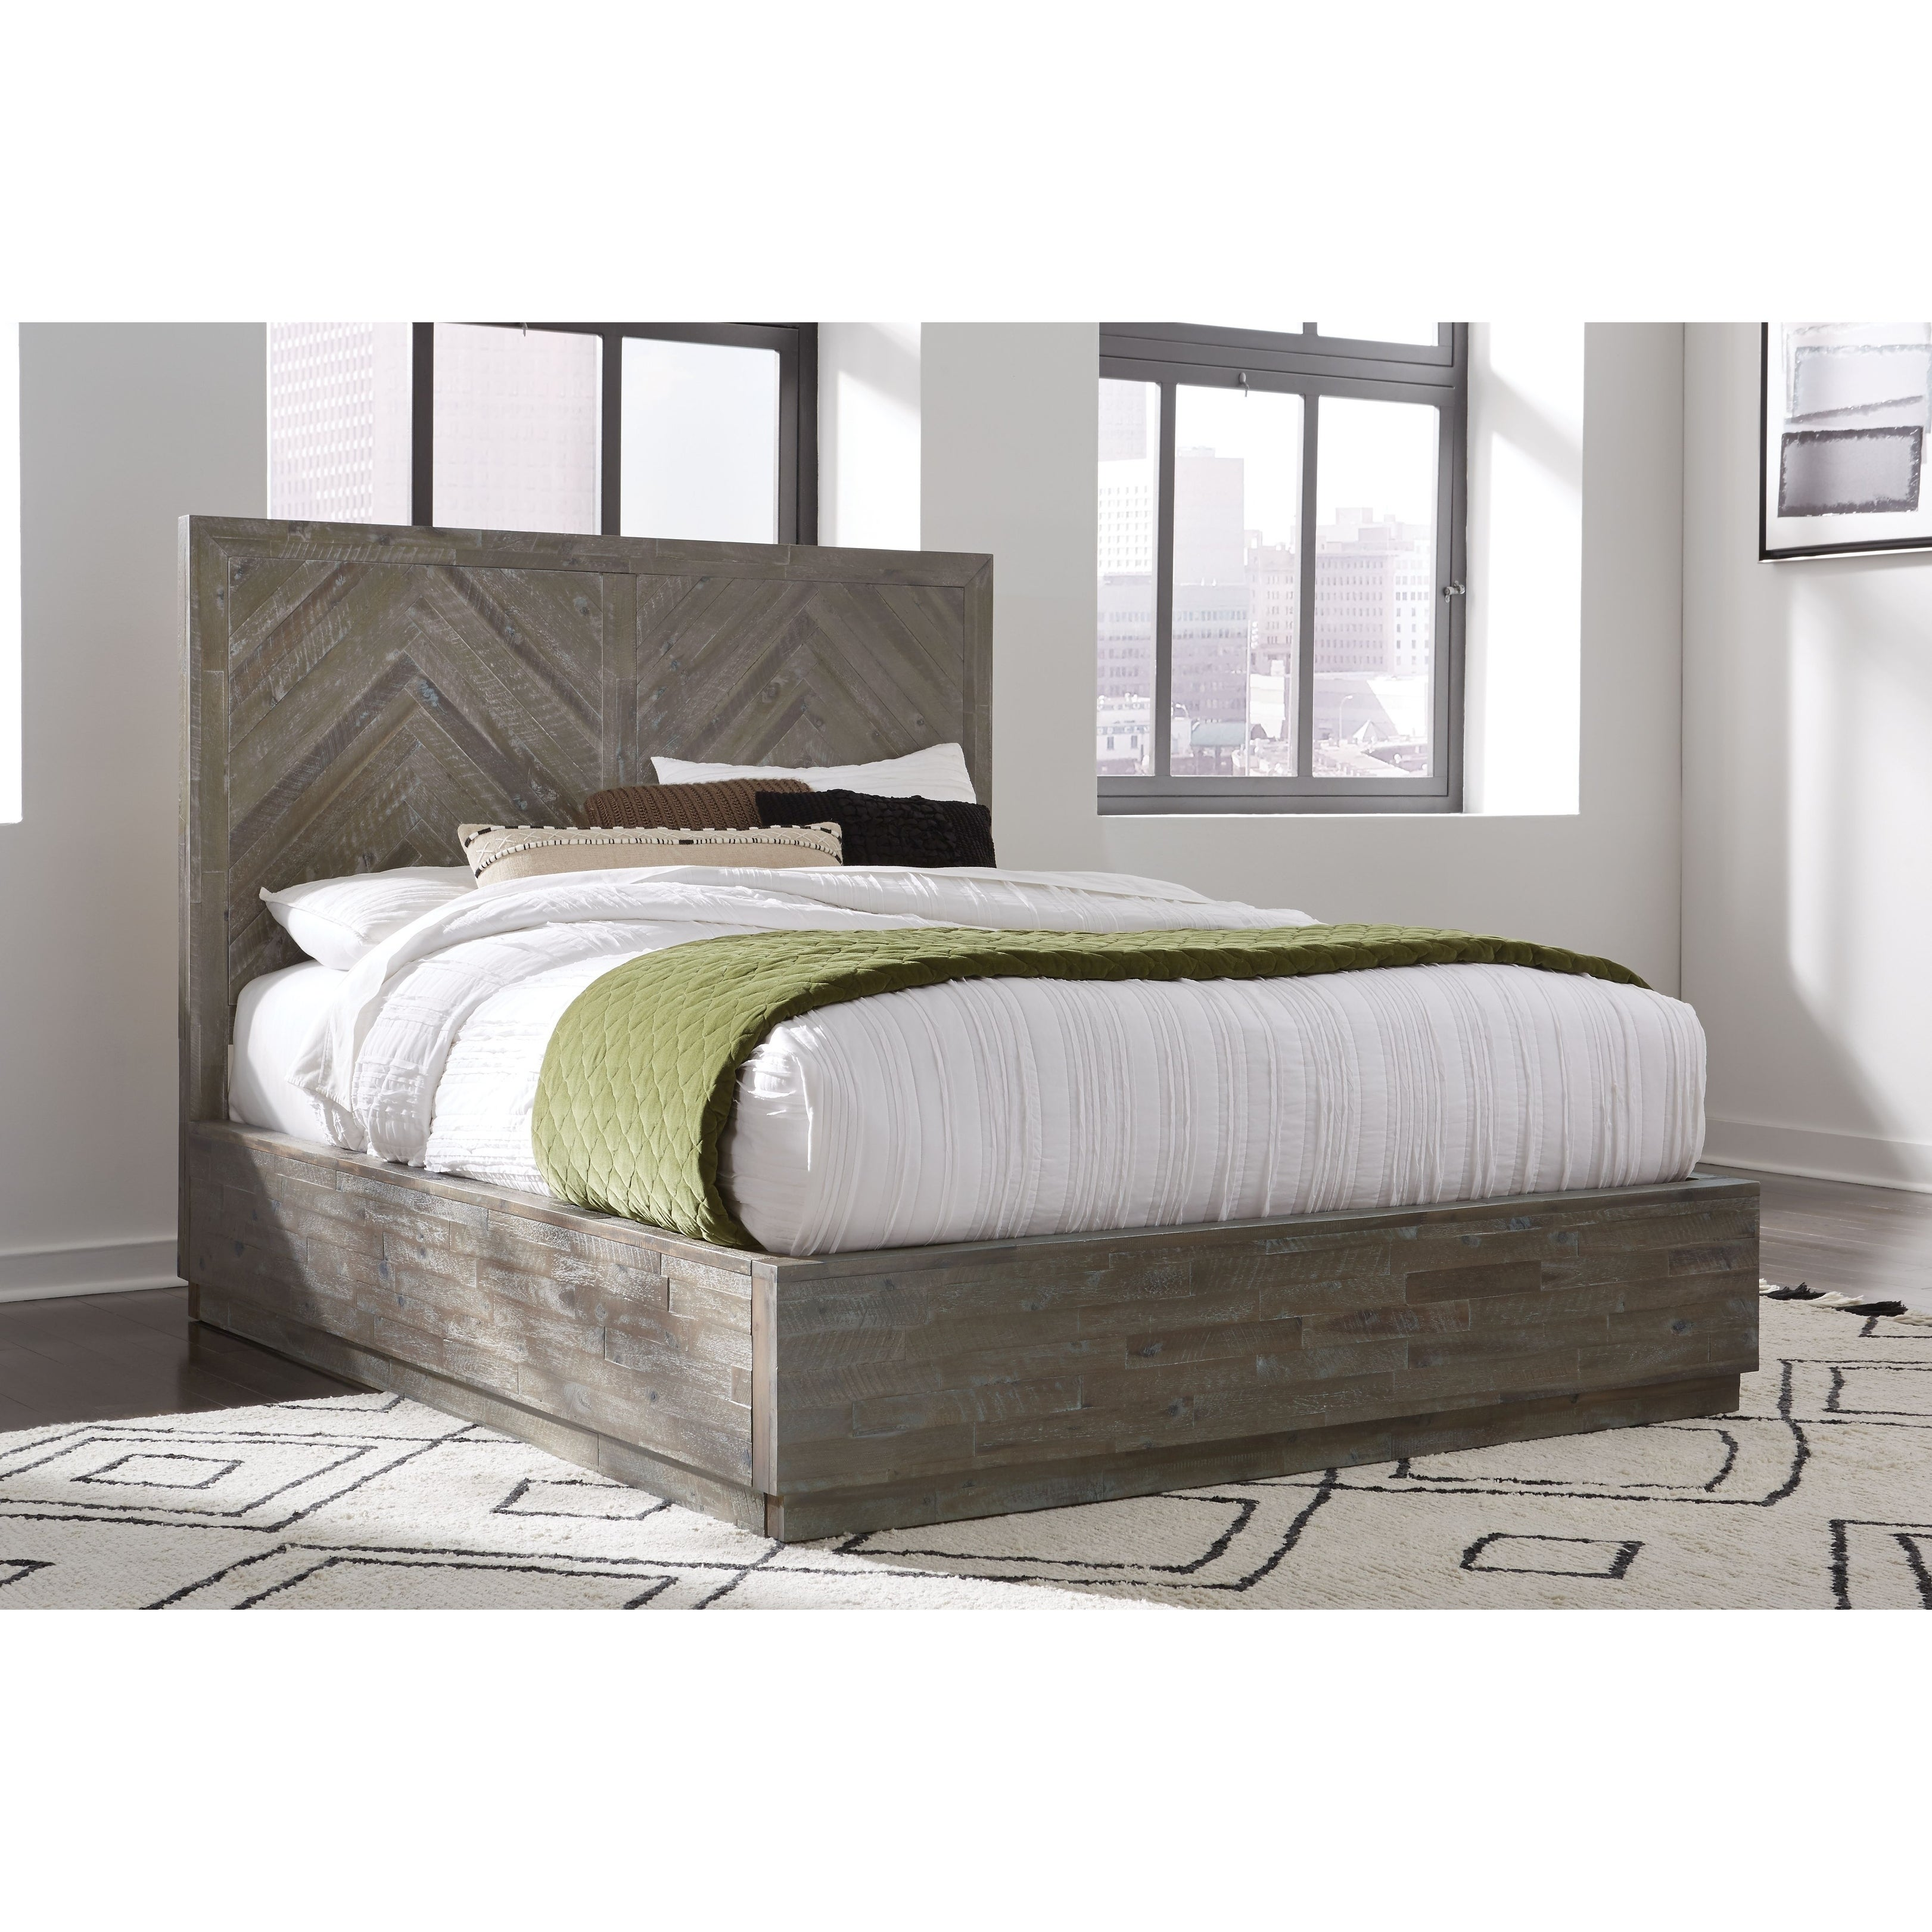 The Gray Barn Morning Star King Size Solid Wood Platform Bed Rustic Latte Overstock 29345062